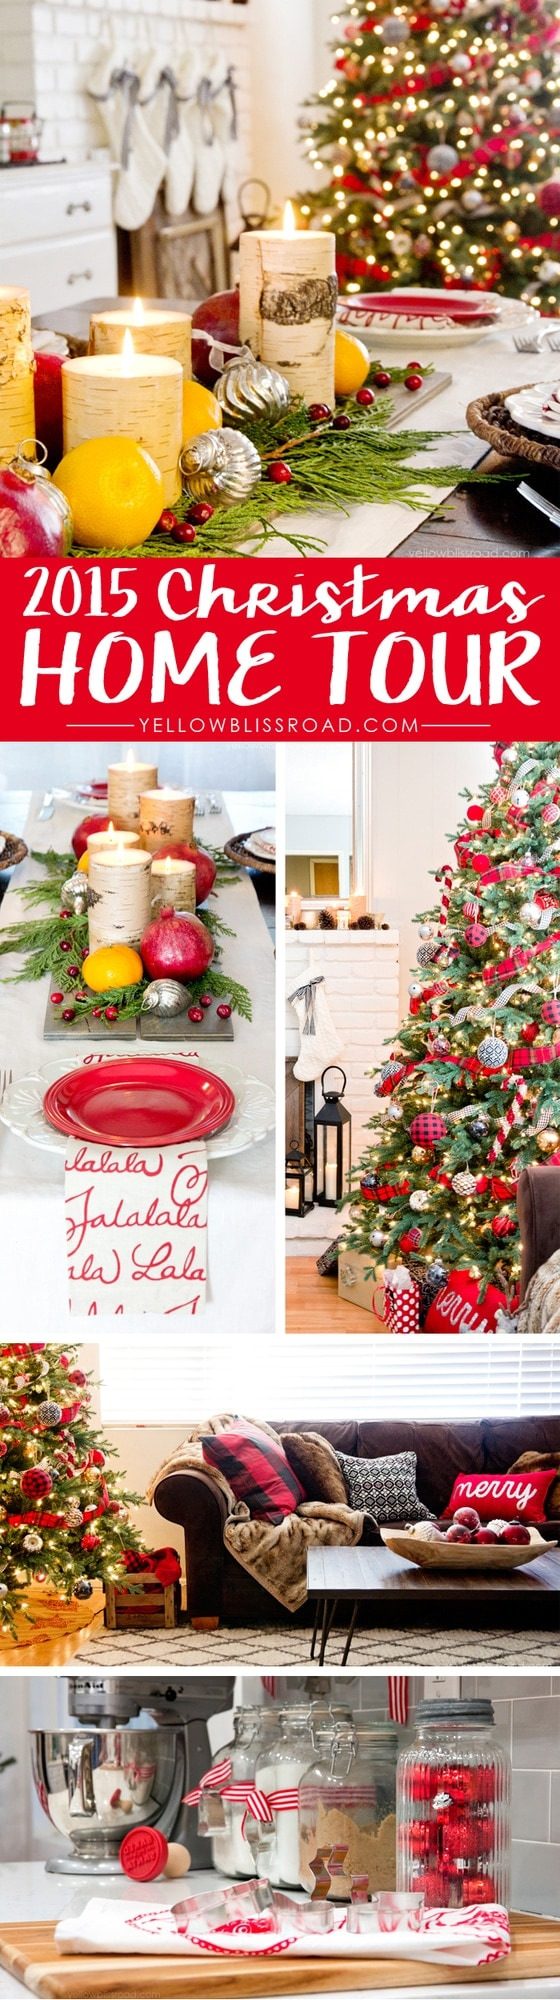 2015 Christmas Home Tour with Classis Reds and Rustic Plaids